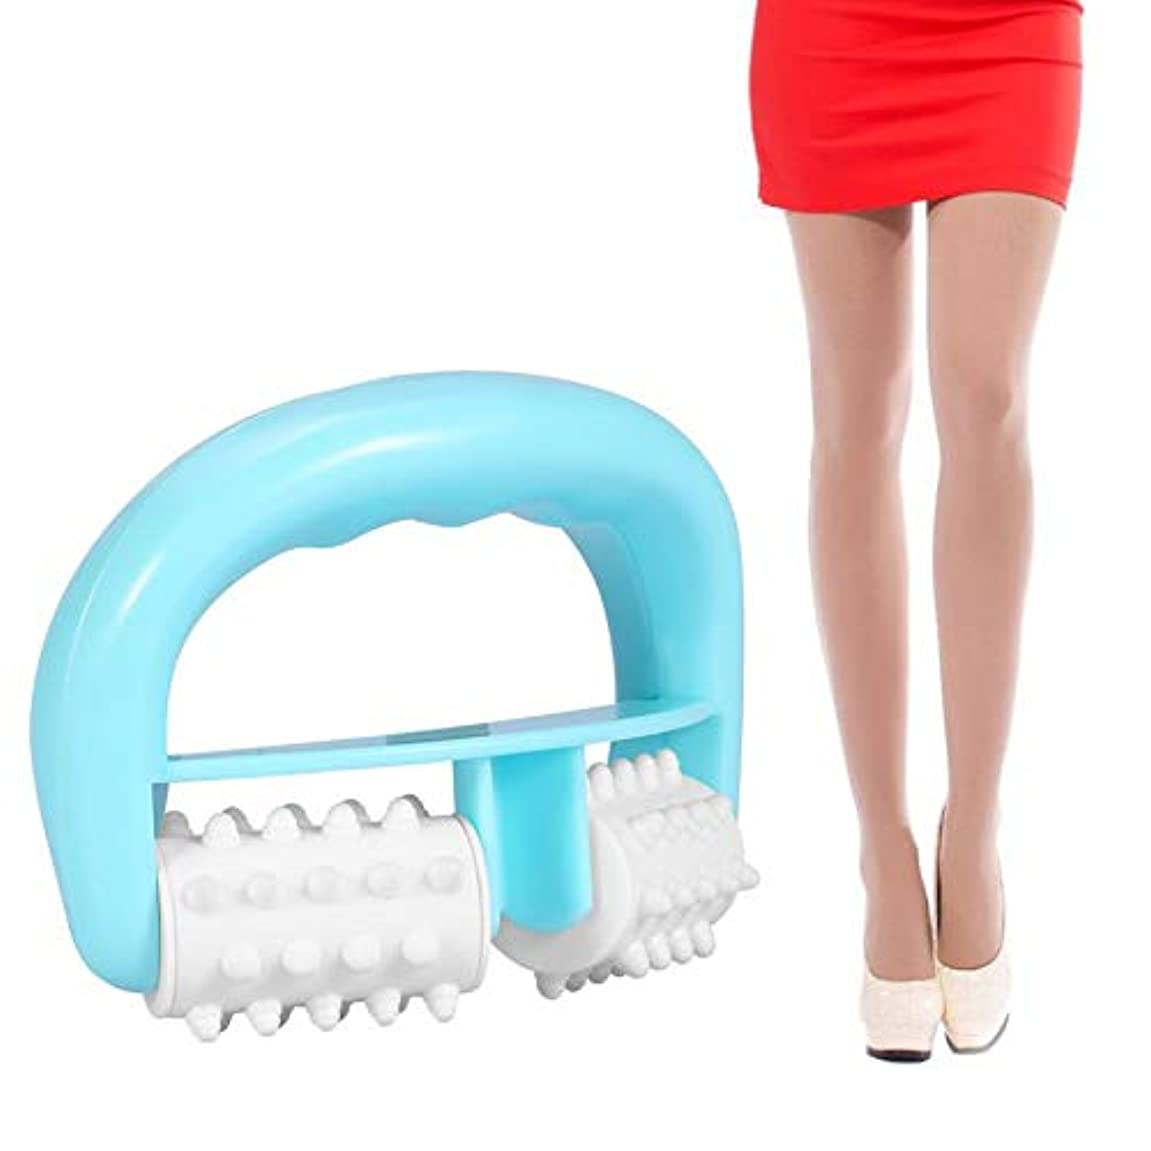 Handle Cell Roller Massager Mini Wheel Ball Slimming Body Leg Foot Hand Neck Fat Cellulite Control Pain Relief Roller Massage